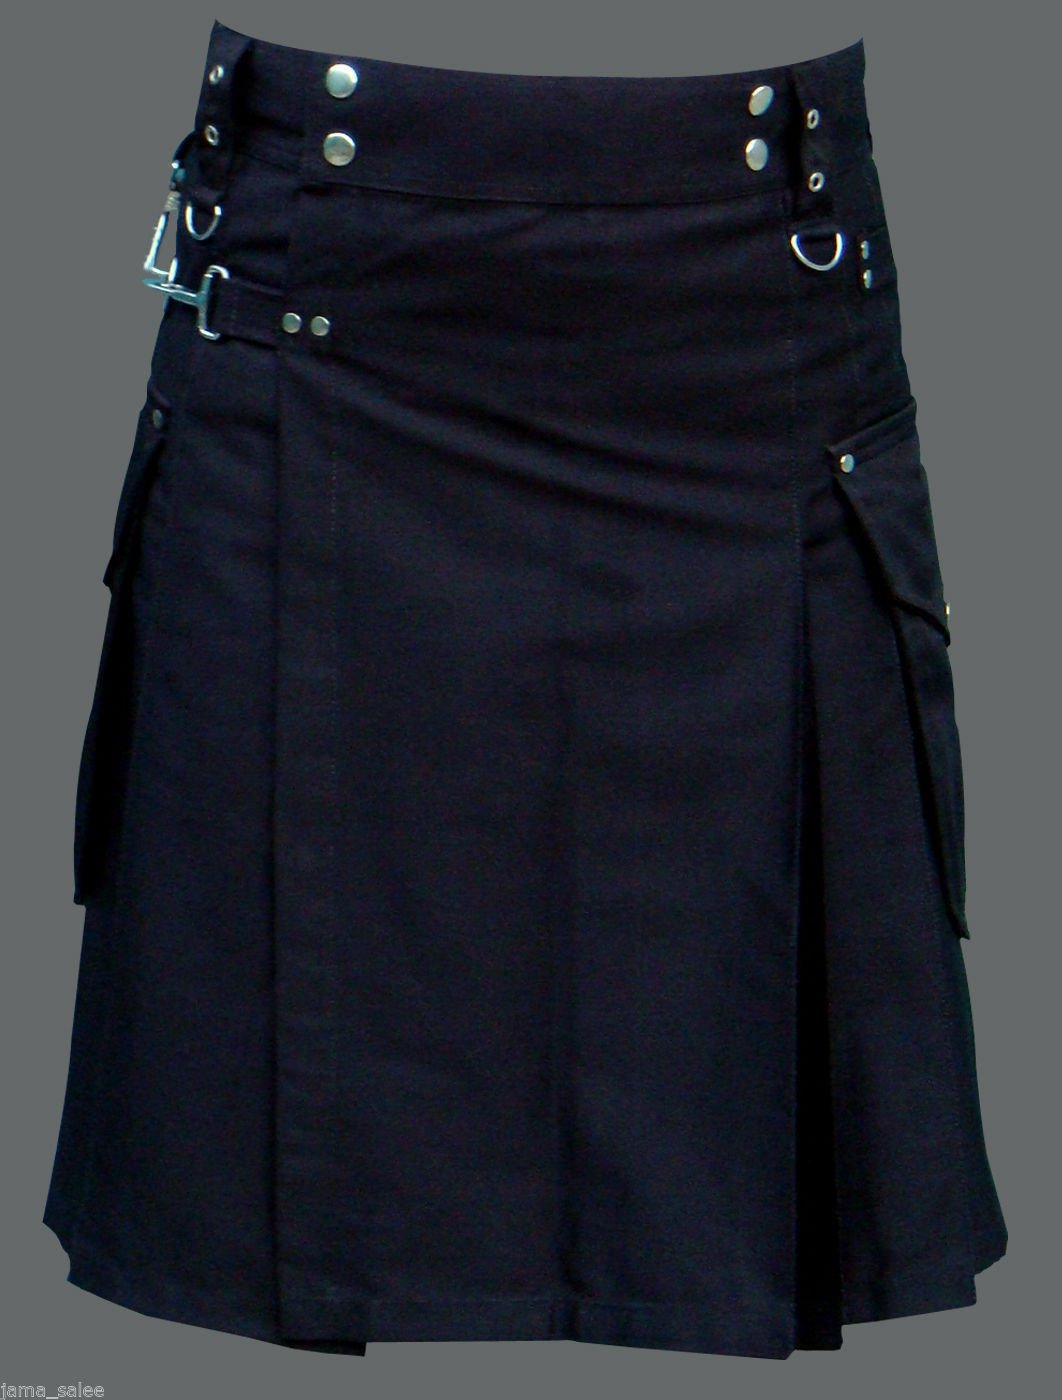 Deluxe Black Cotton Kilt Handmade Utility Gothic Modern Kilt with Cargo Pockets Waist Size 42 to Fit